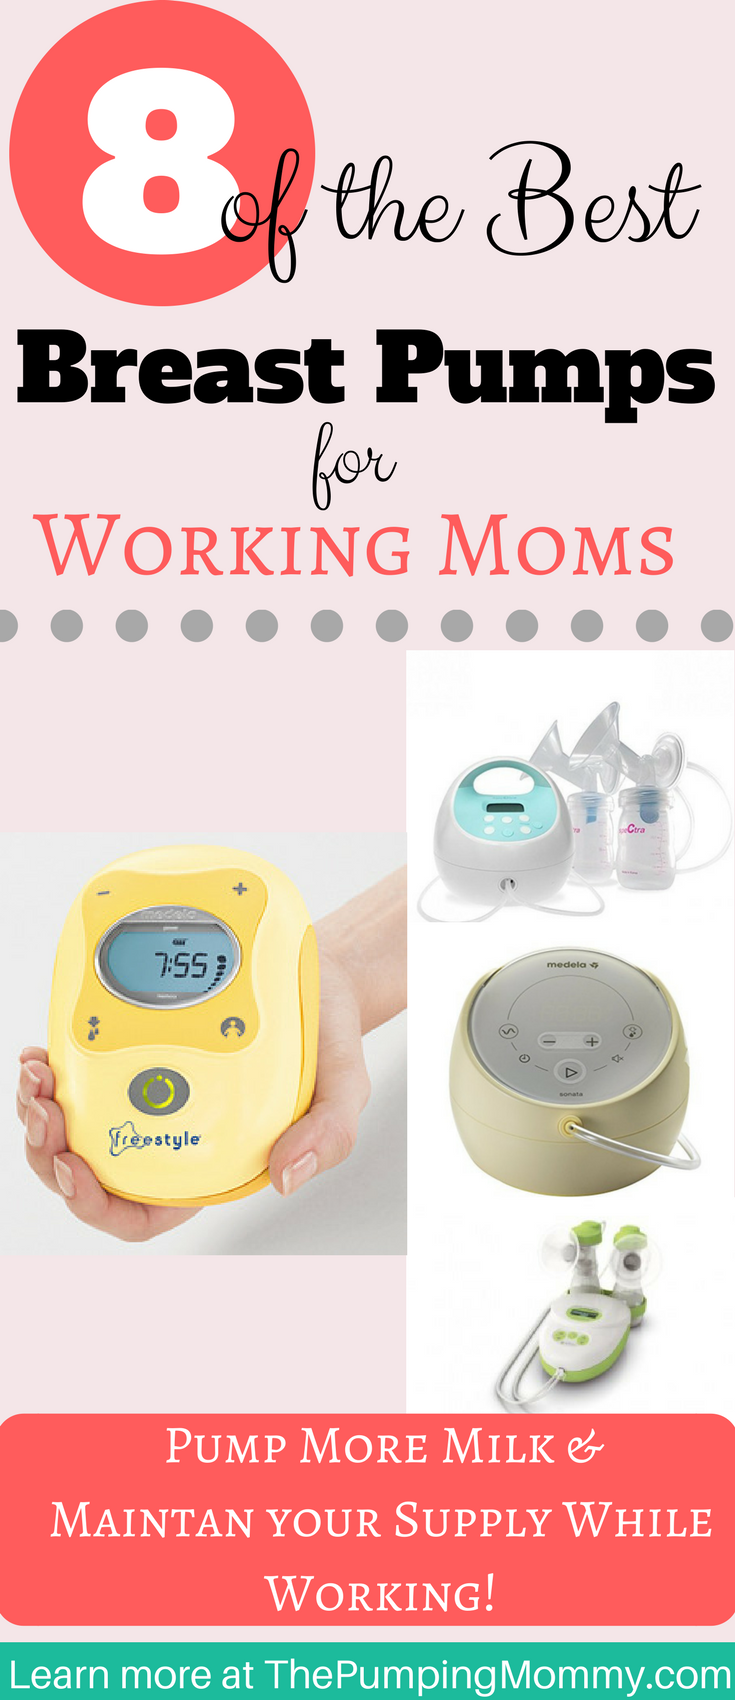 8 Of The Best Breast Pumps For Working Moms The Pumping Mommy